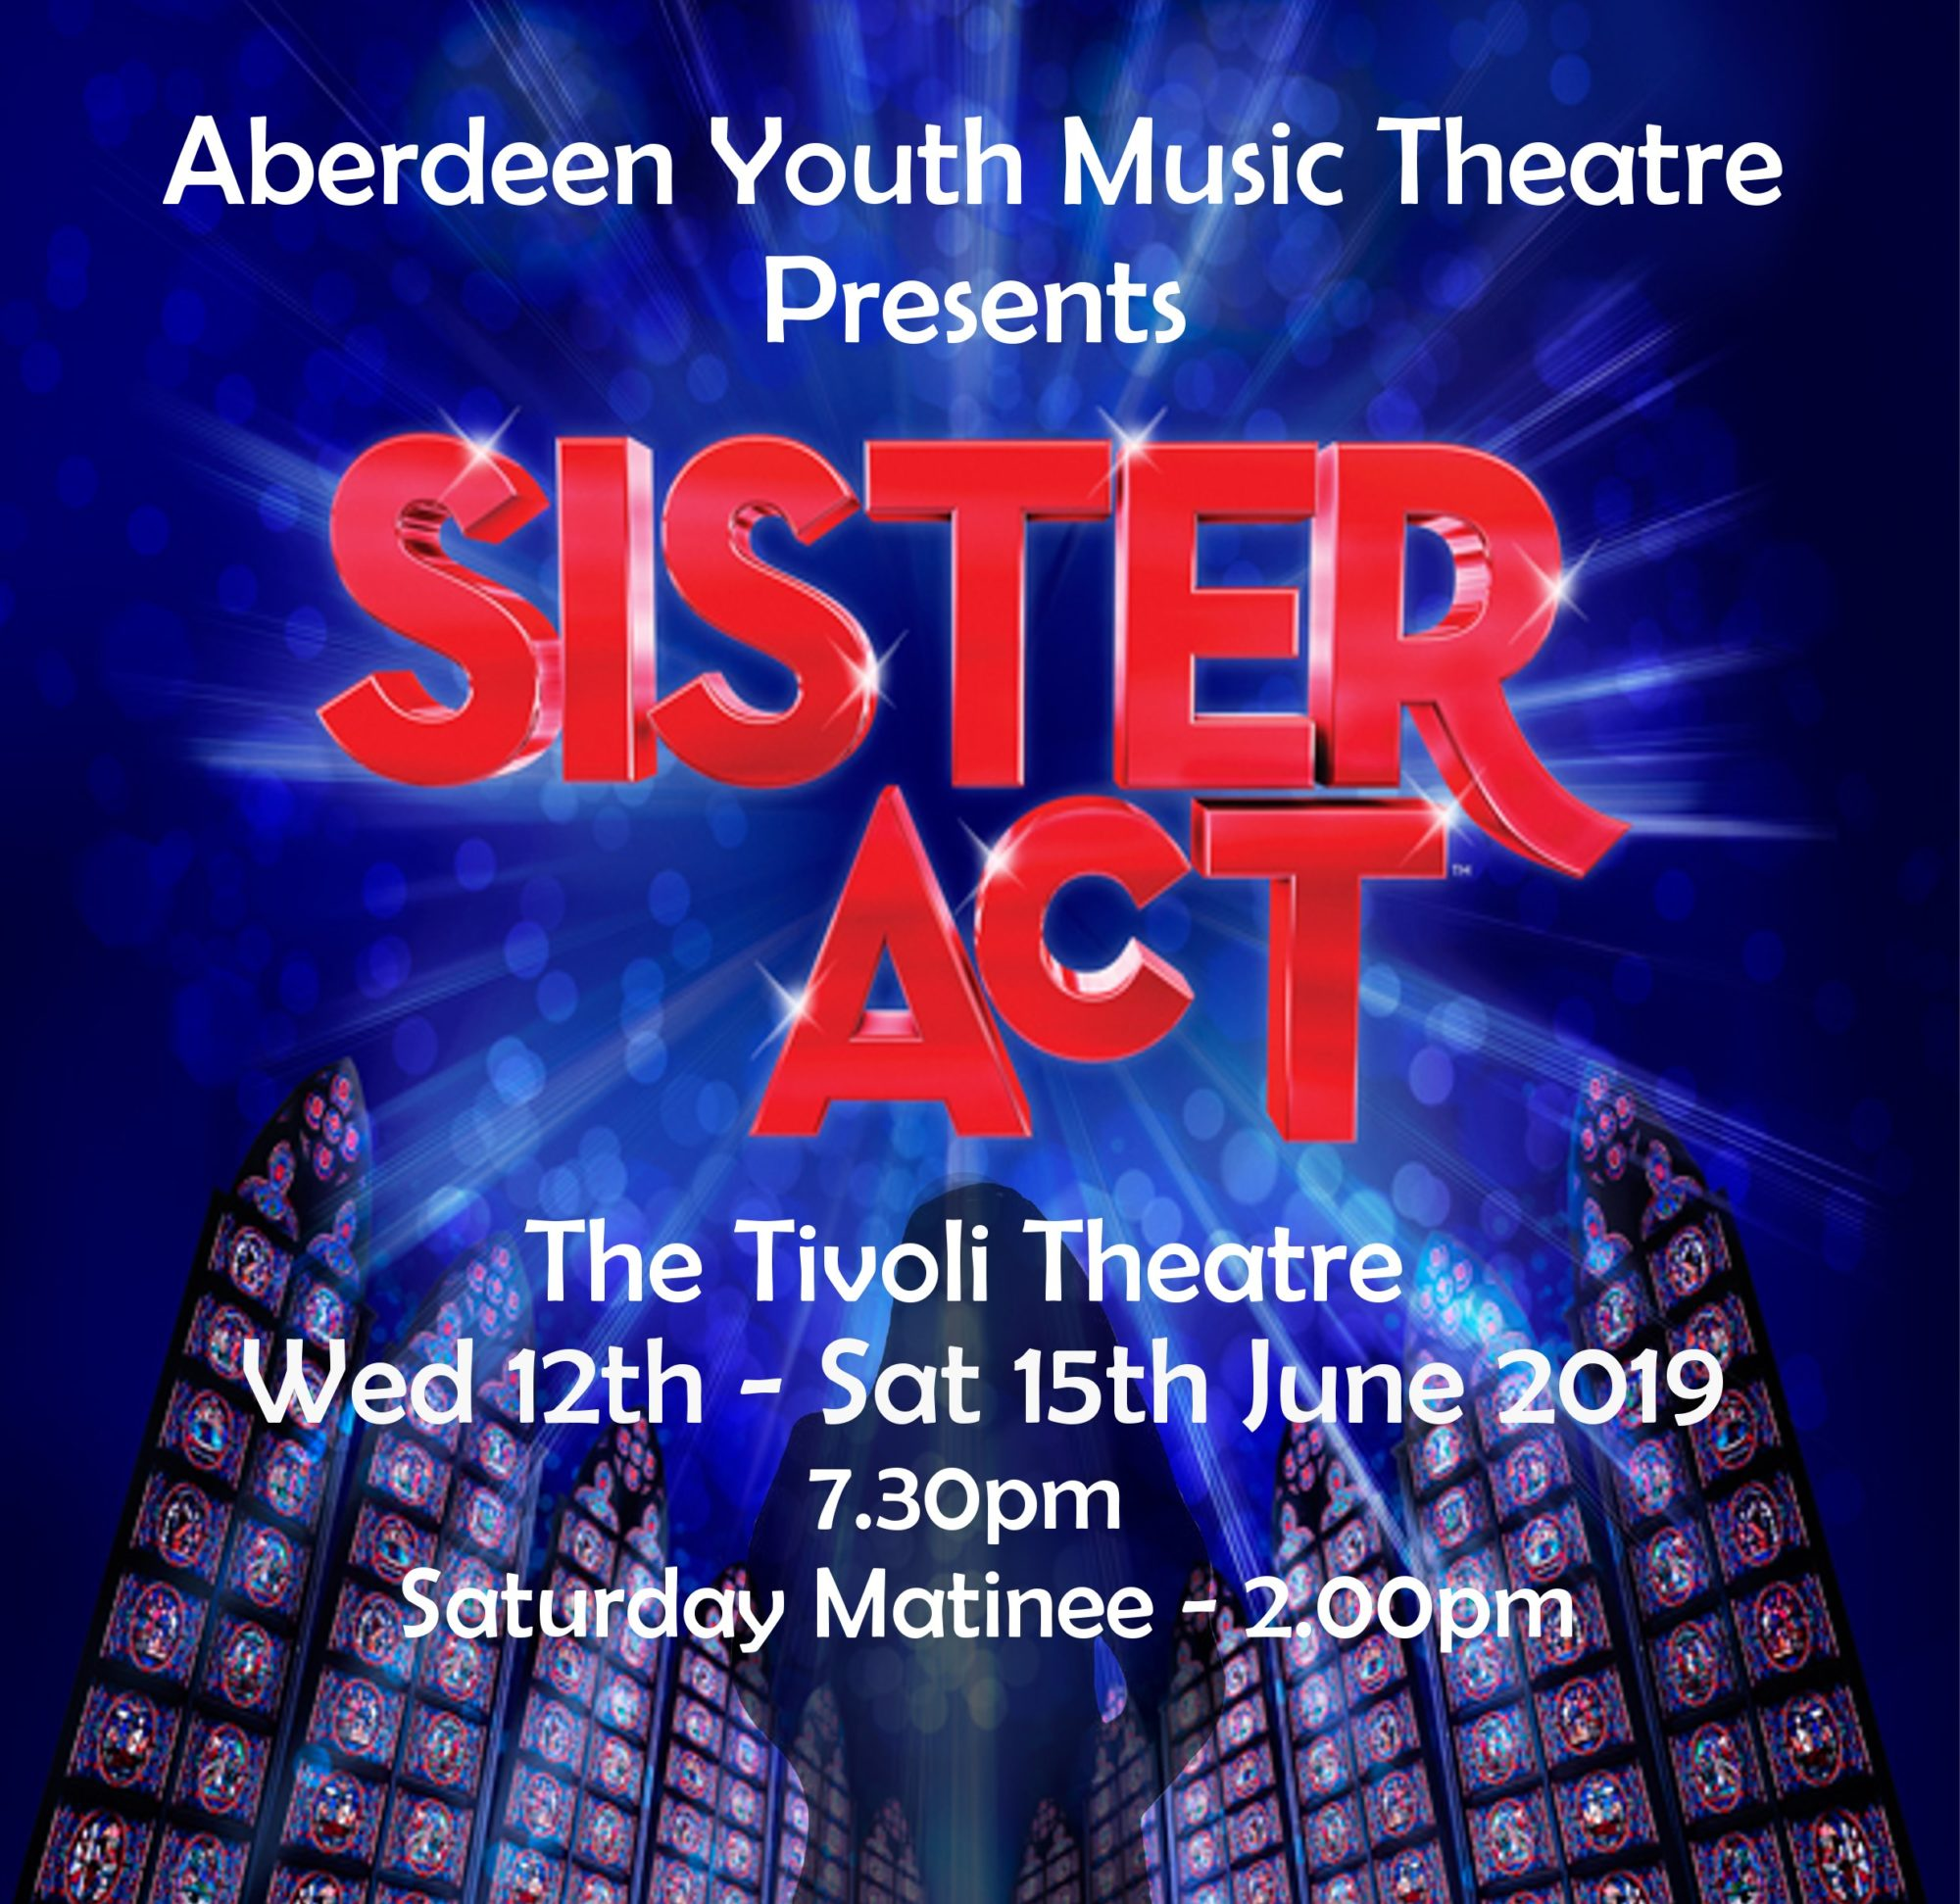 Sister Act The Tivoli Theatre